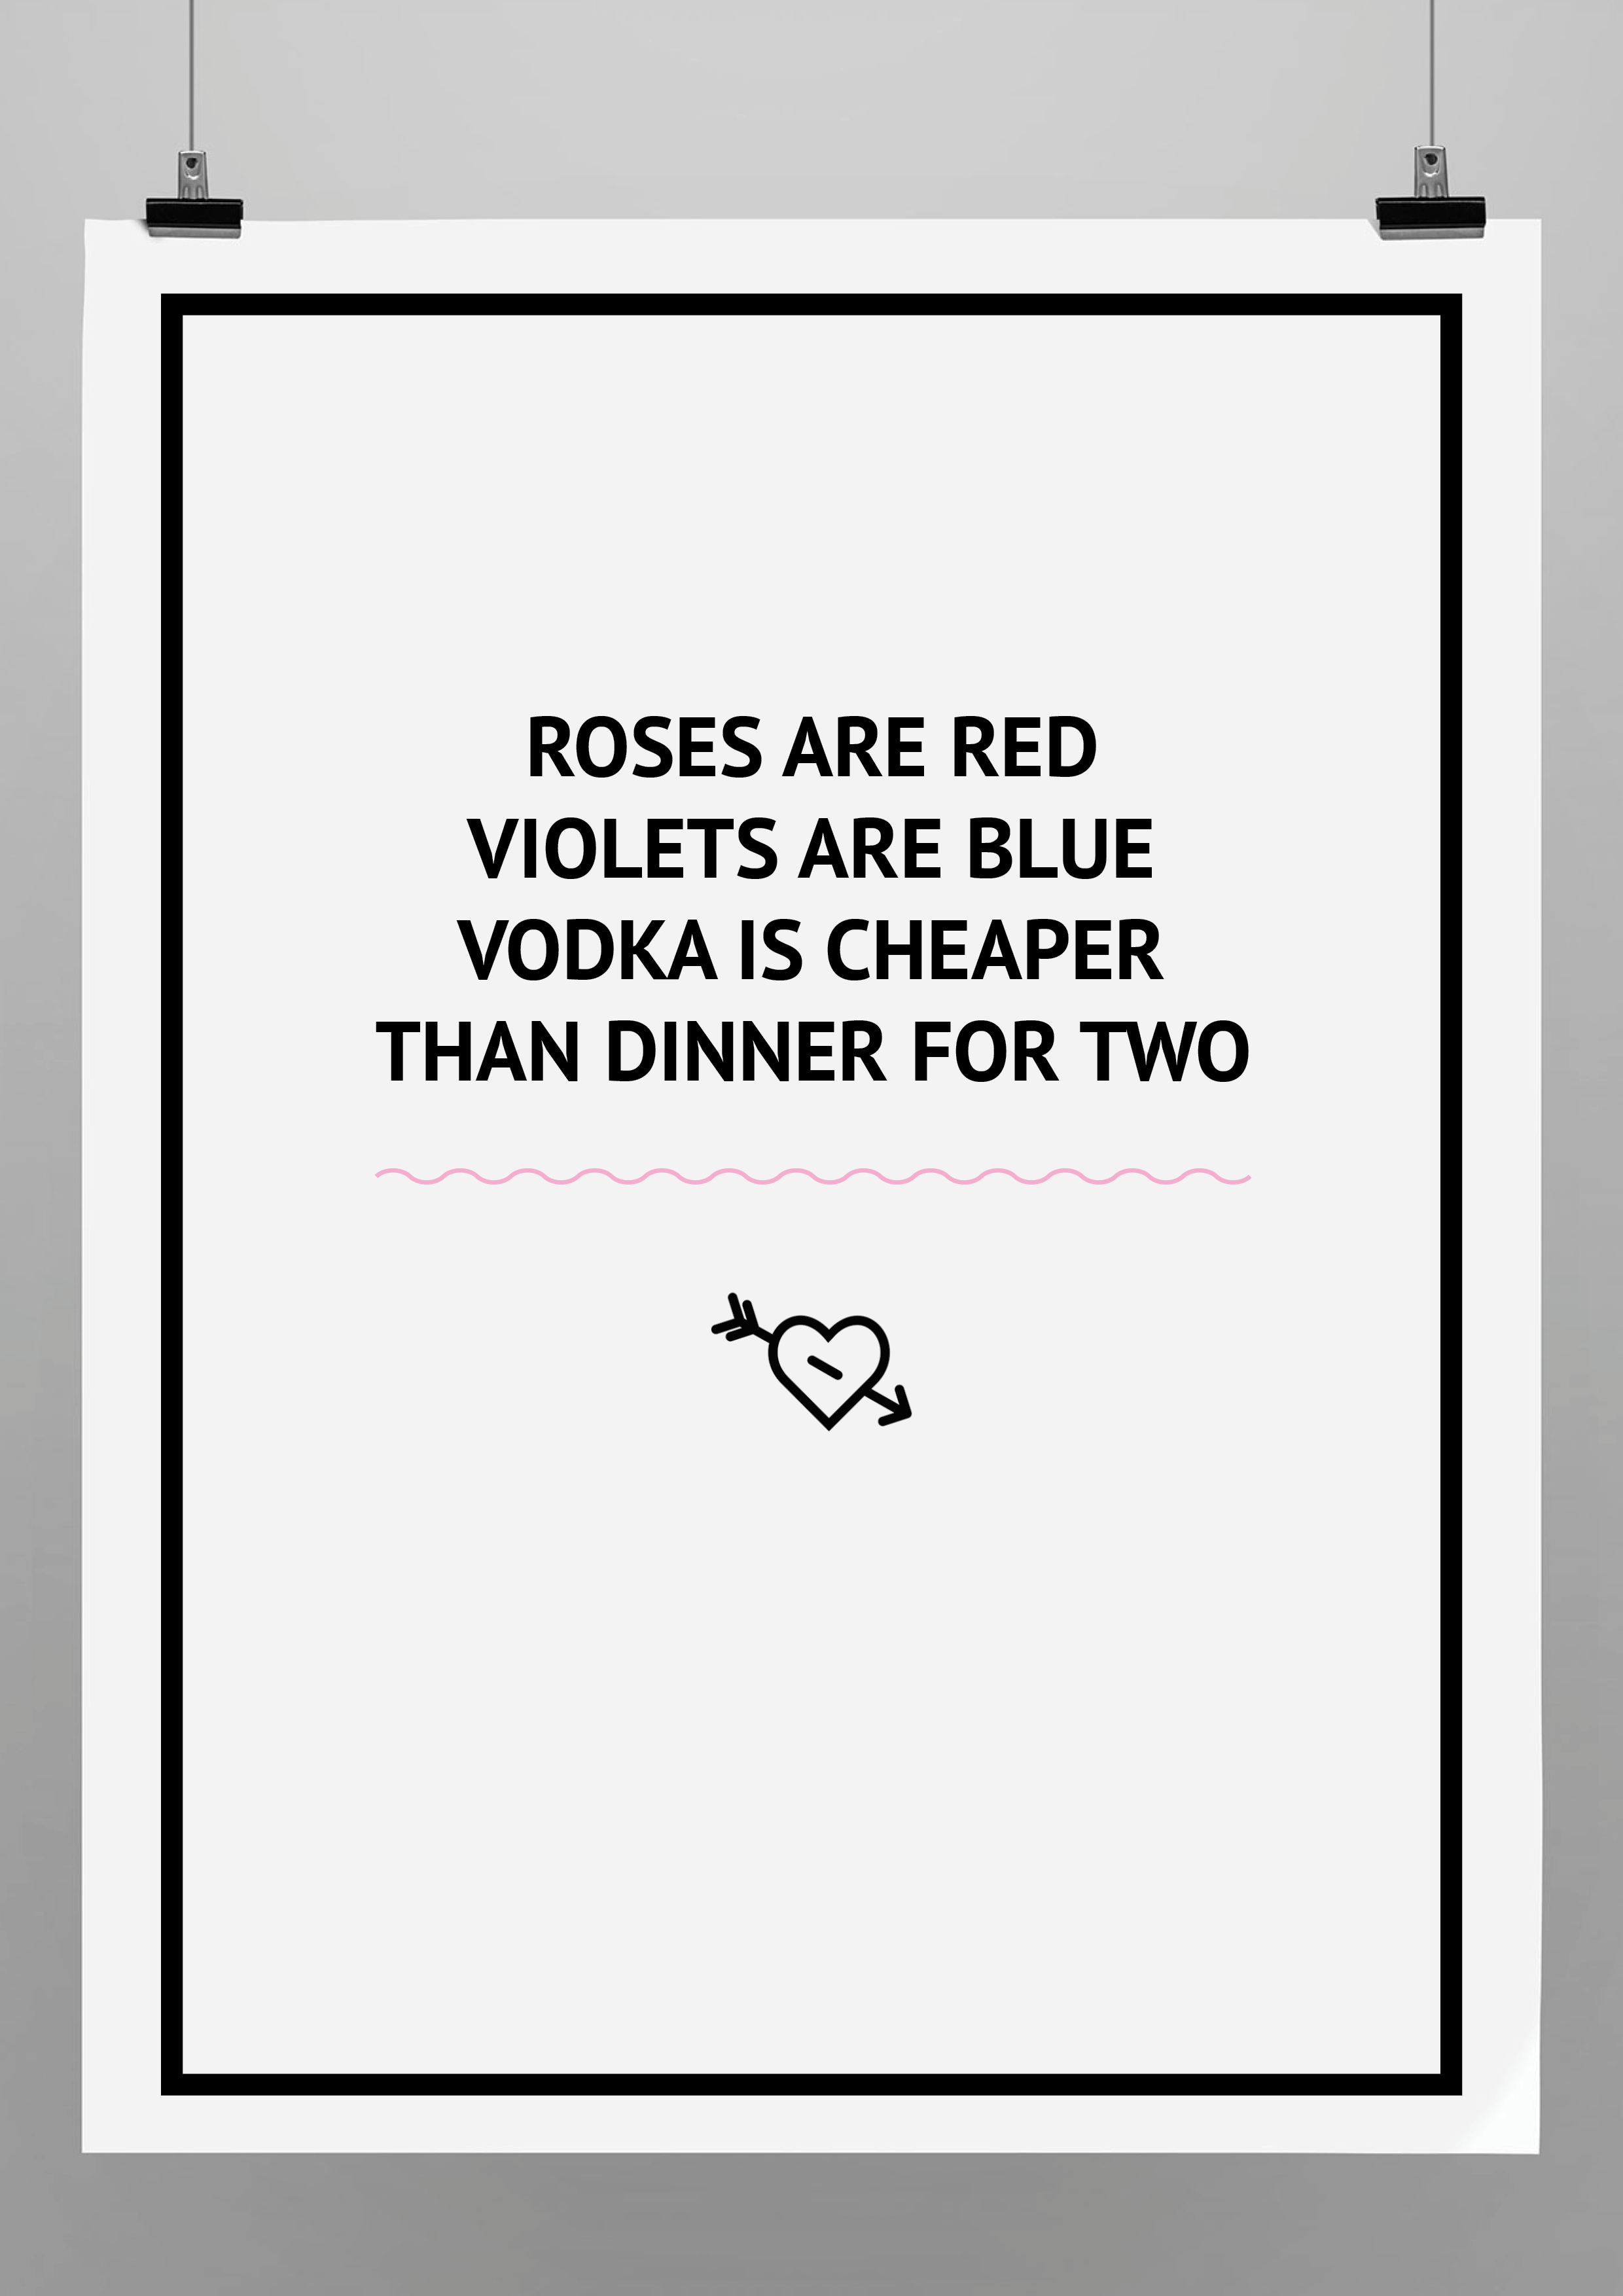 Valentines Day Roses Are Red Violets Are Blue Vodka Is Cheaper Than Dinner For Two Bar Quotes Roses Are Red Violets Are Blue Dinner For Two